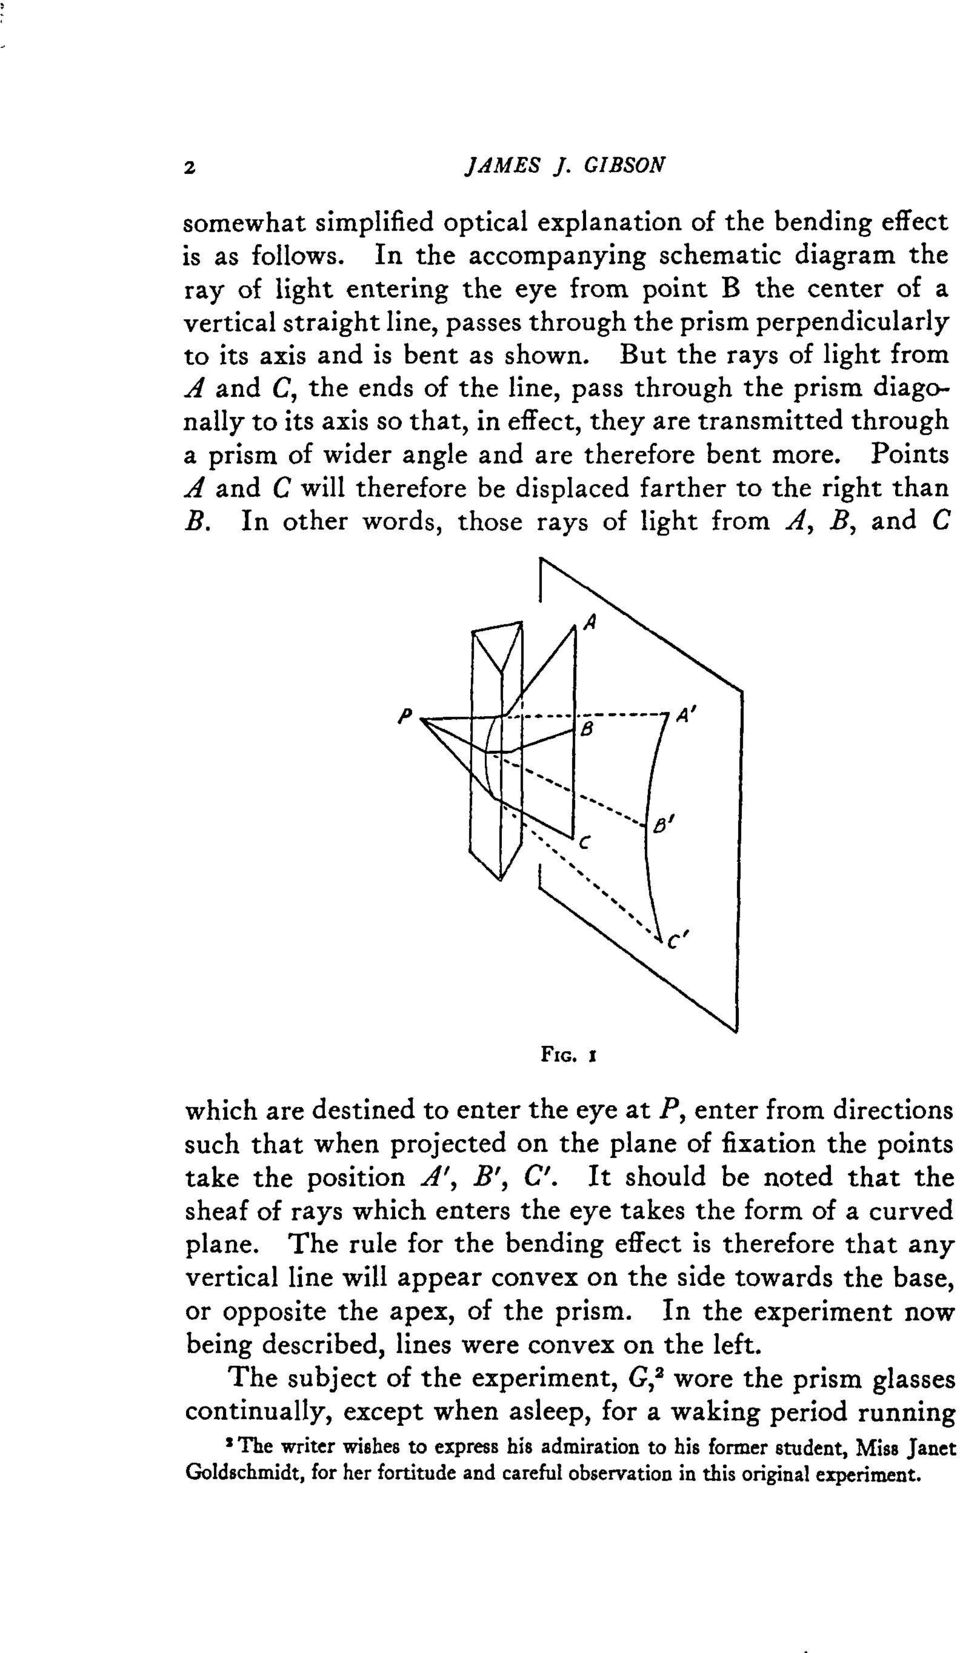 But the rays of light from A and C, the ends of the line, pass through the prism diagonally to its axis so that, in effect, they are transmitted through a prism of wider angle and are therefore bent